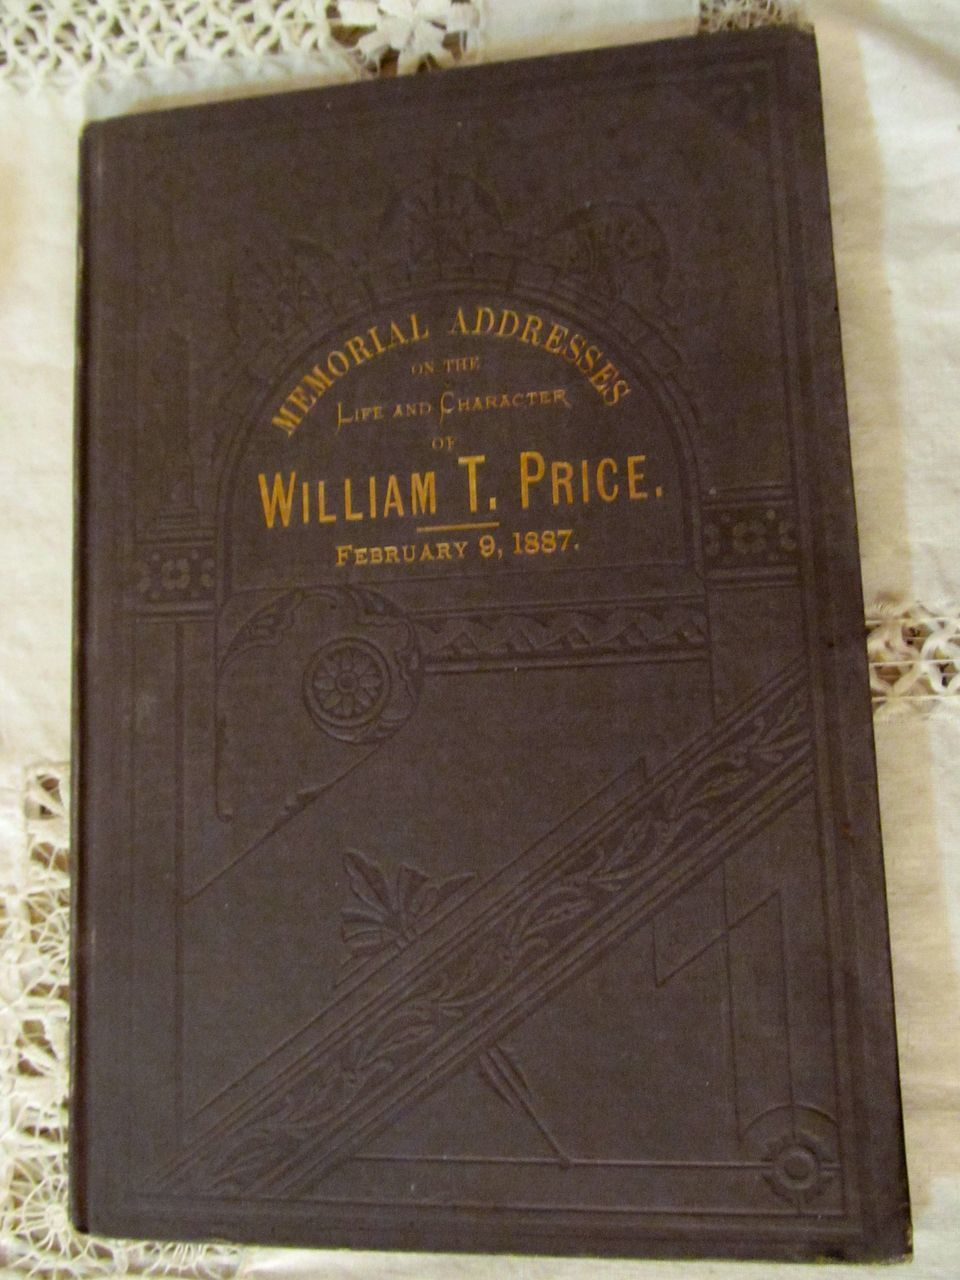 1887 Memorial Addresses On the Life and Character of Willaim T Price, Published by Order of Congress, Publ Washington GPO